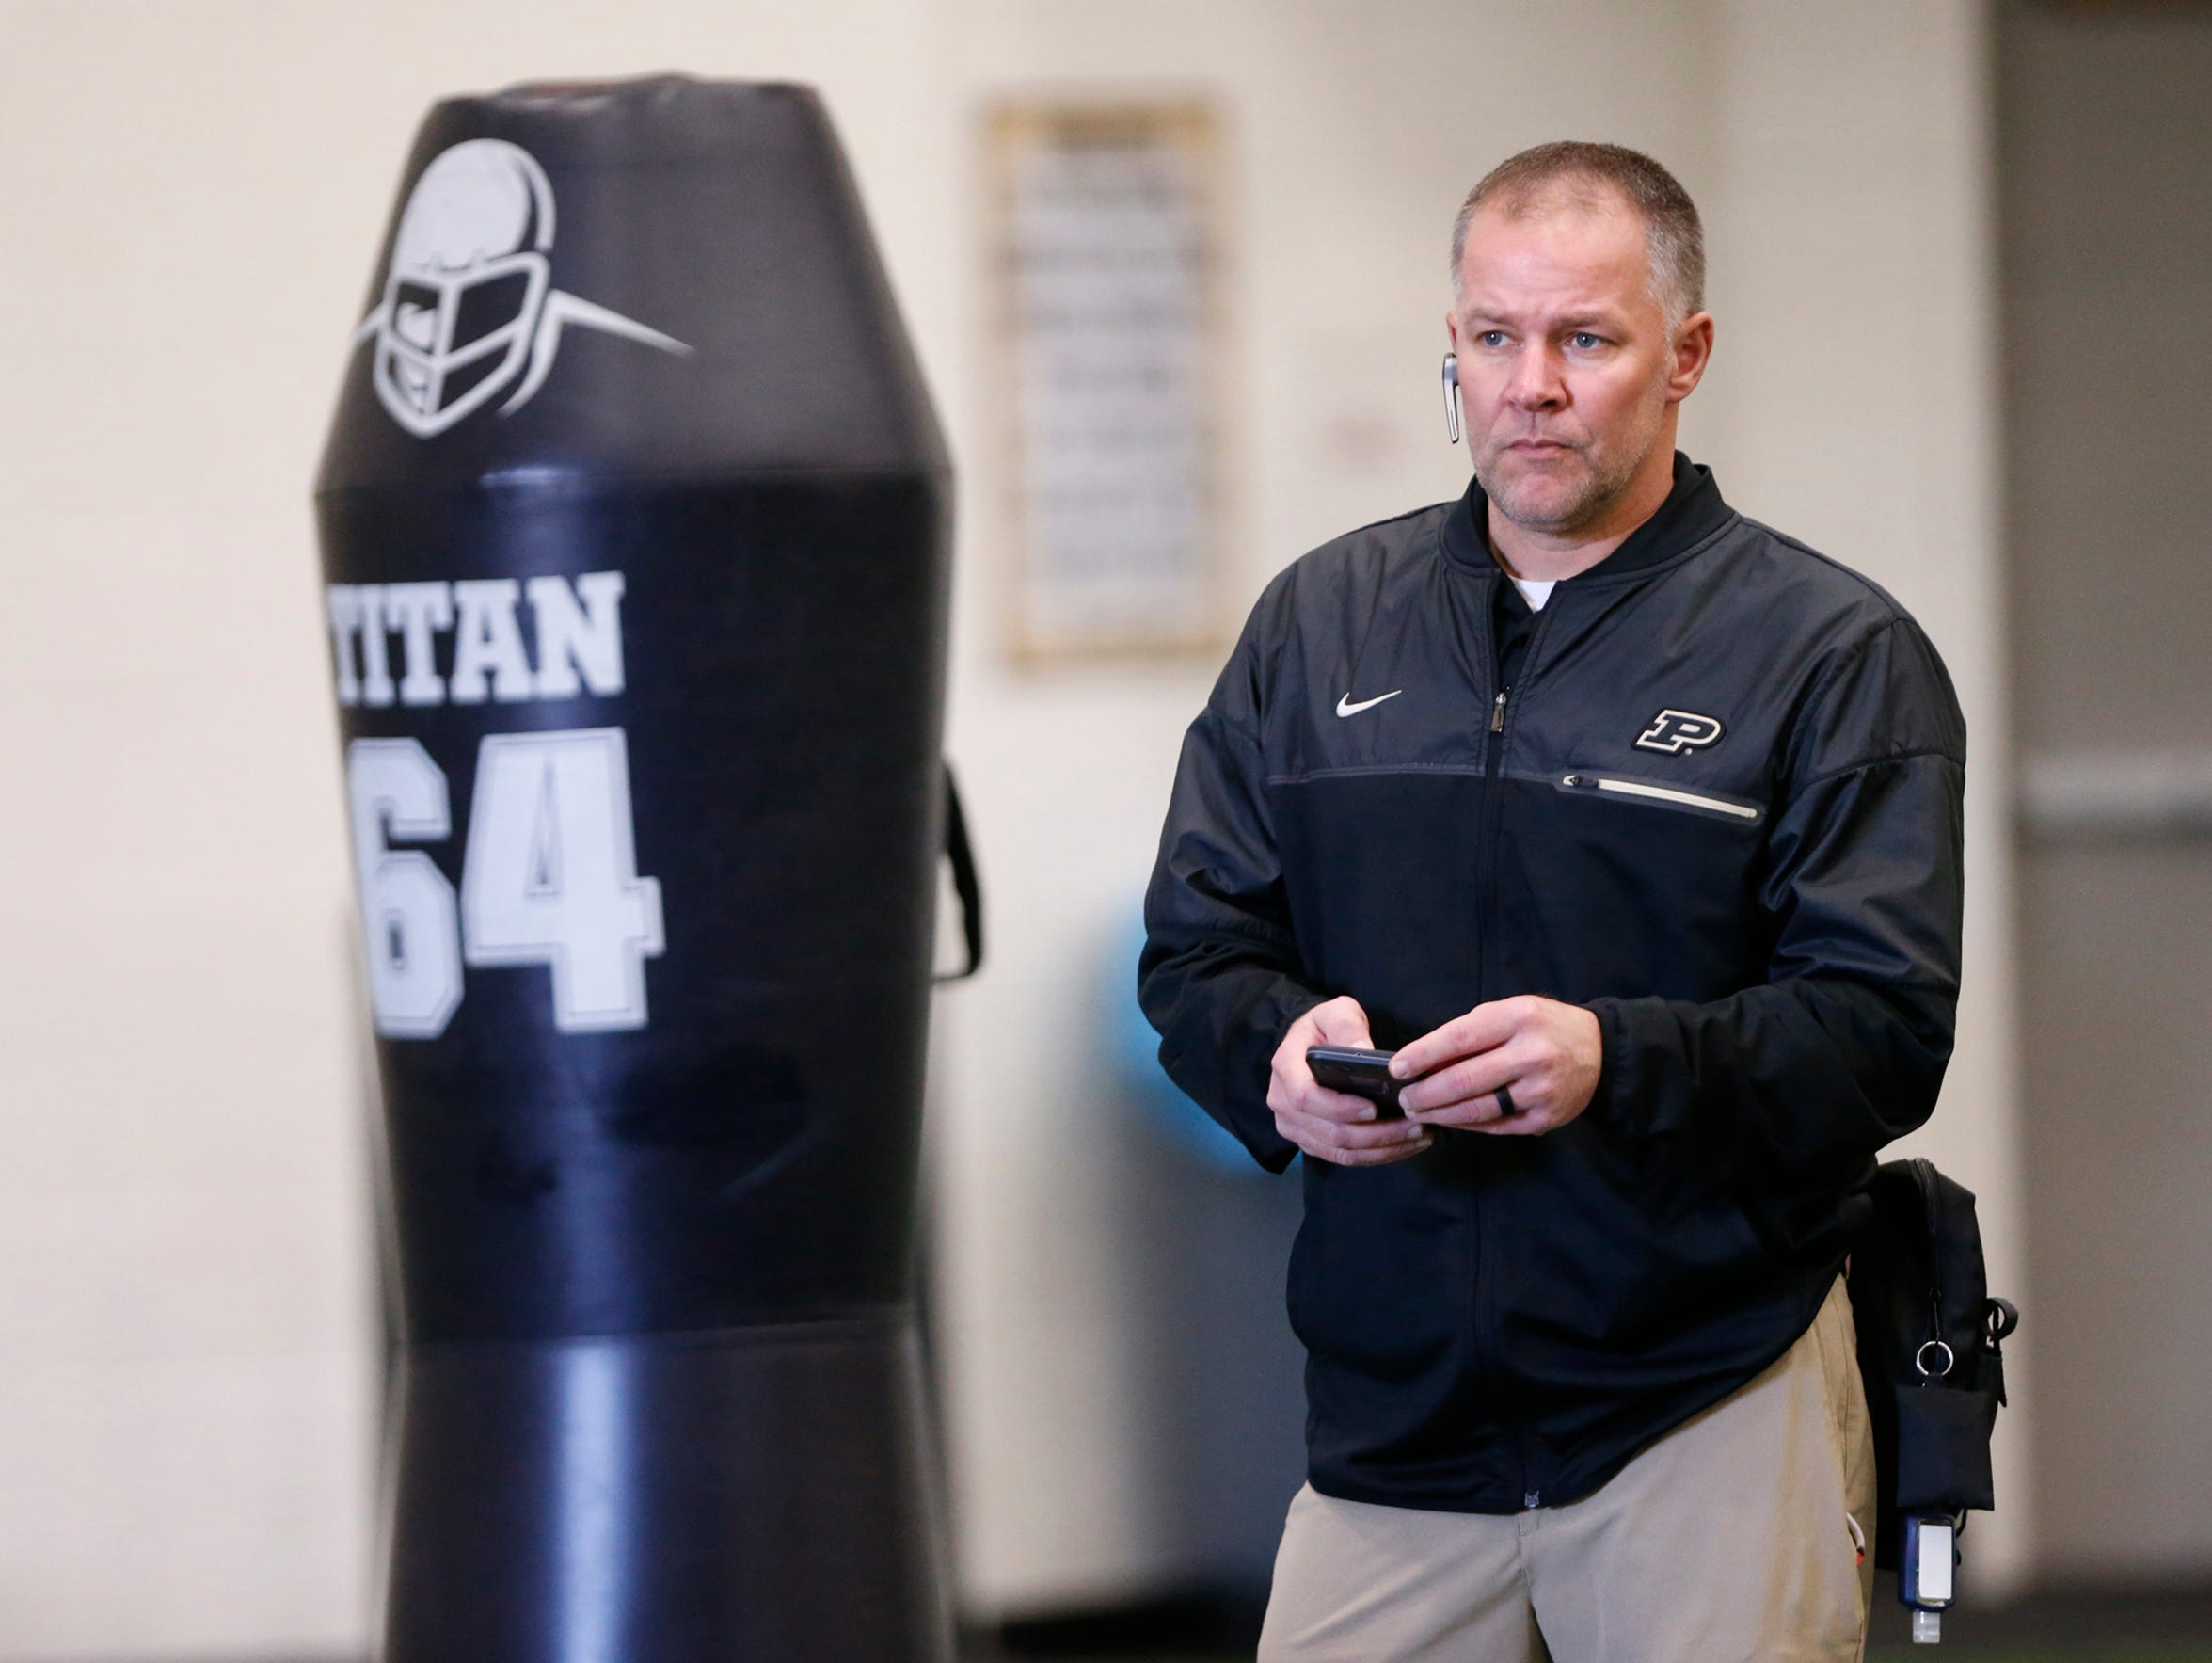 Doug Boersma, asociate athletic director-sports medicine, watches as players run drills during Purdue spring football practice Friday inside the Mollenkopf Athletic Center.